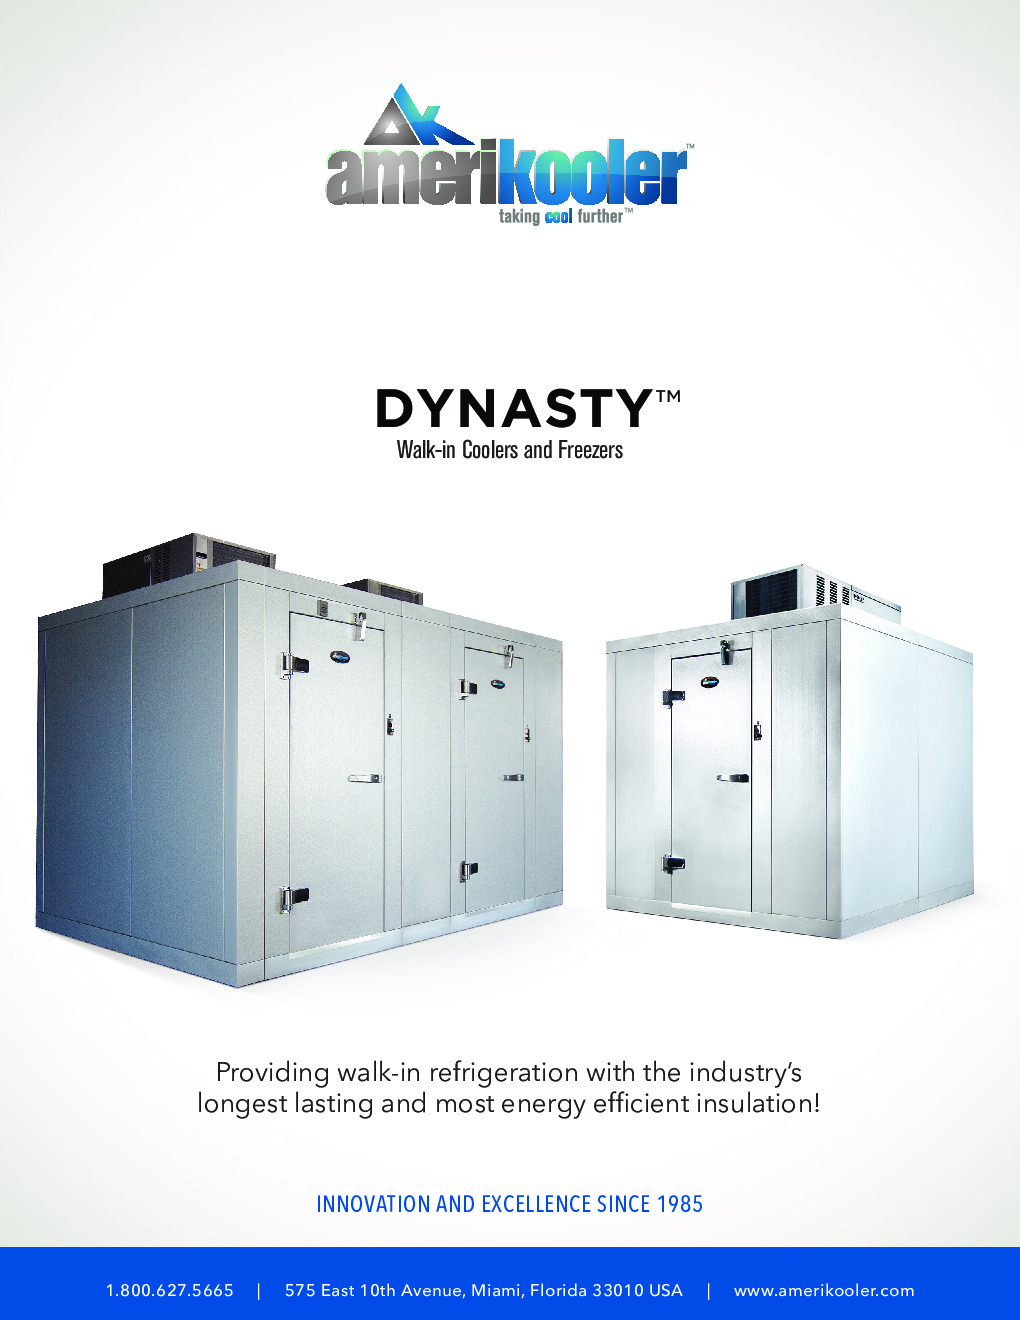 AmeriKooler DW081877N-7/11-RM 8' X 18' Walk-In Cooler, 11' L Cooler without Floor and 7' L Freezer, Remote